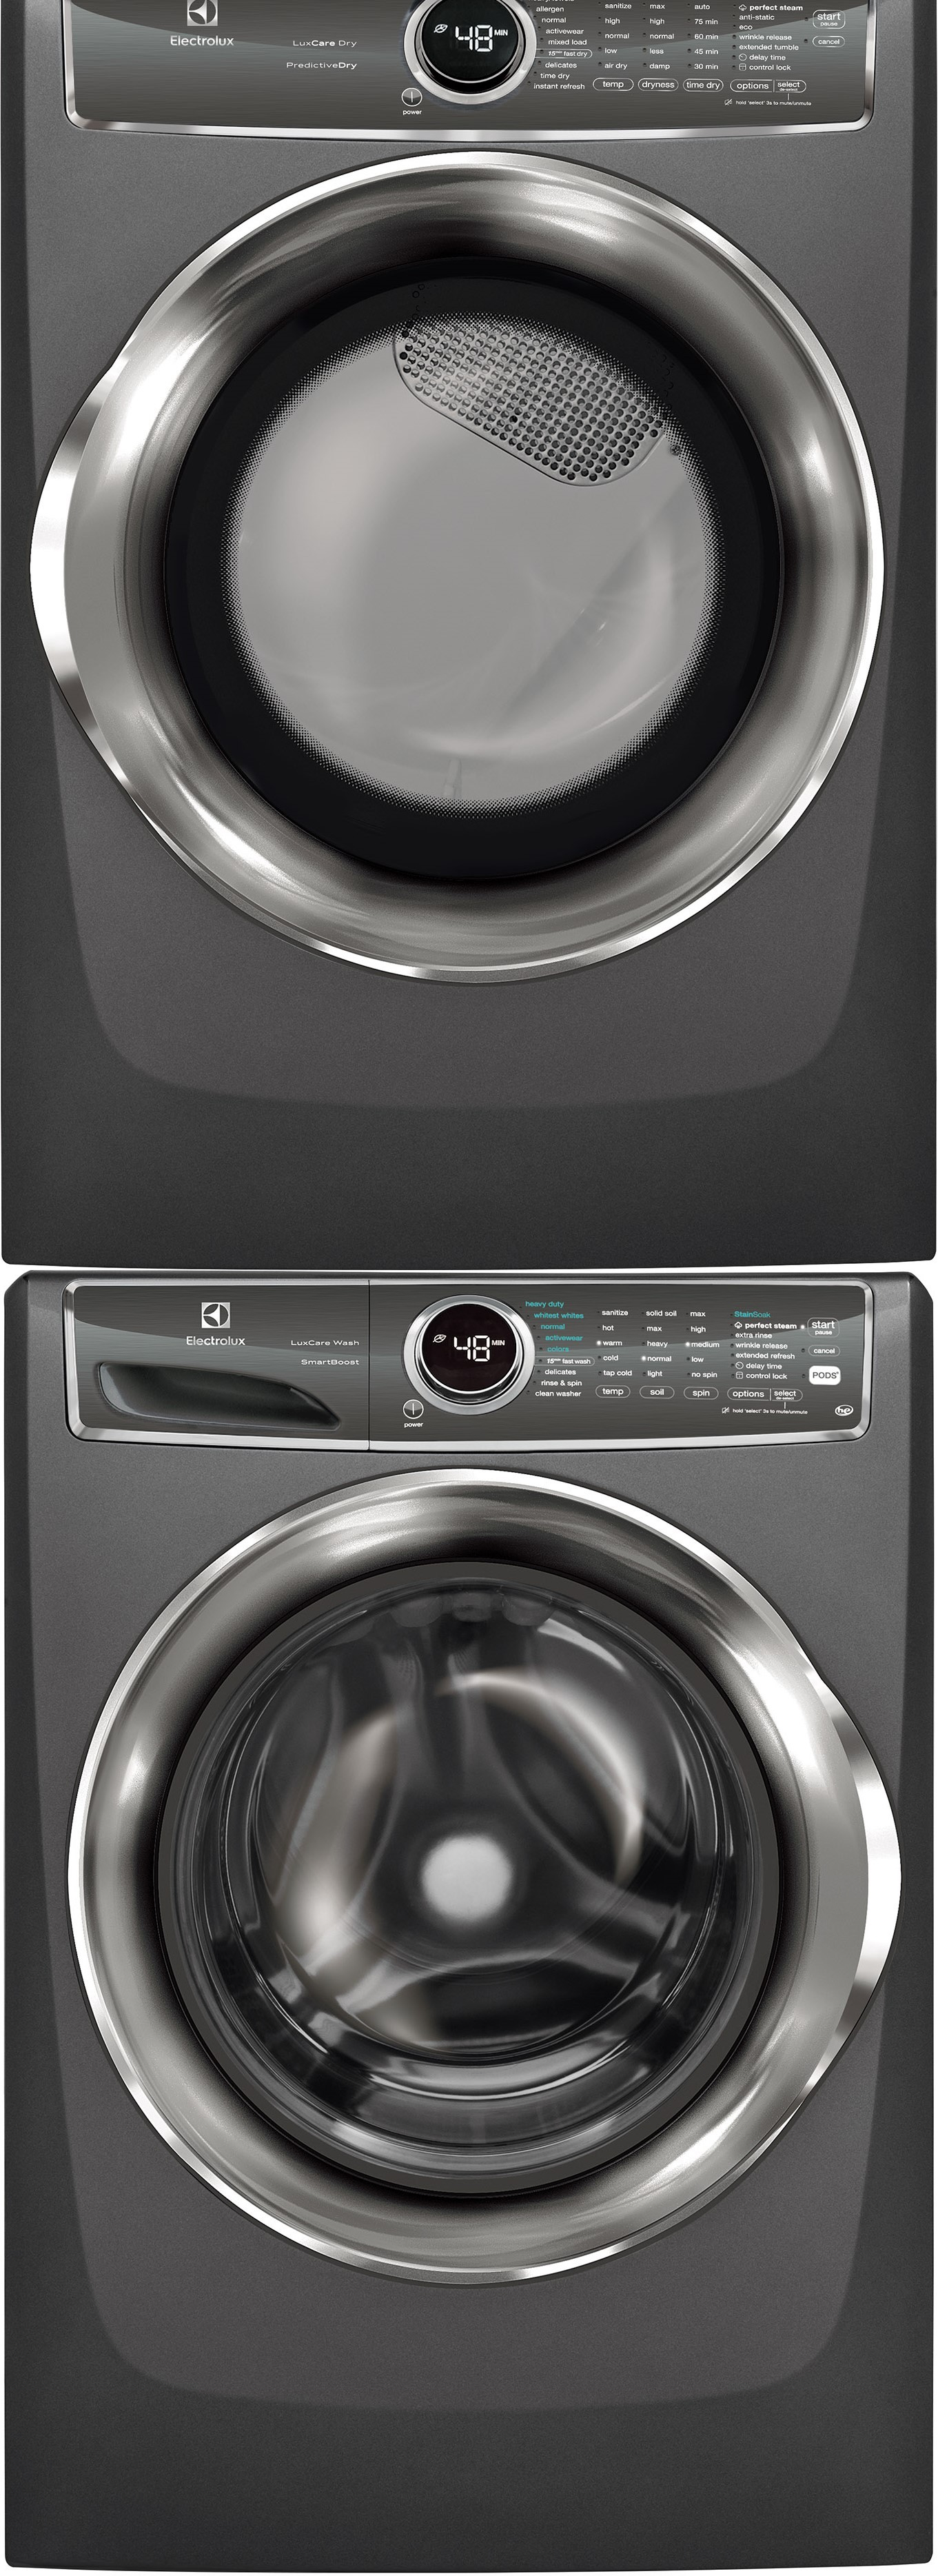 washer and com thelazercast dryer x pedestals pedestal kenmore electrolux